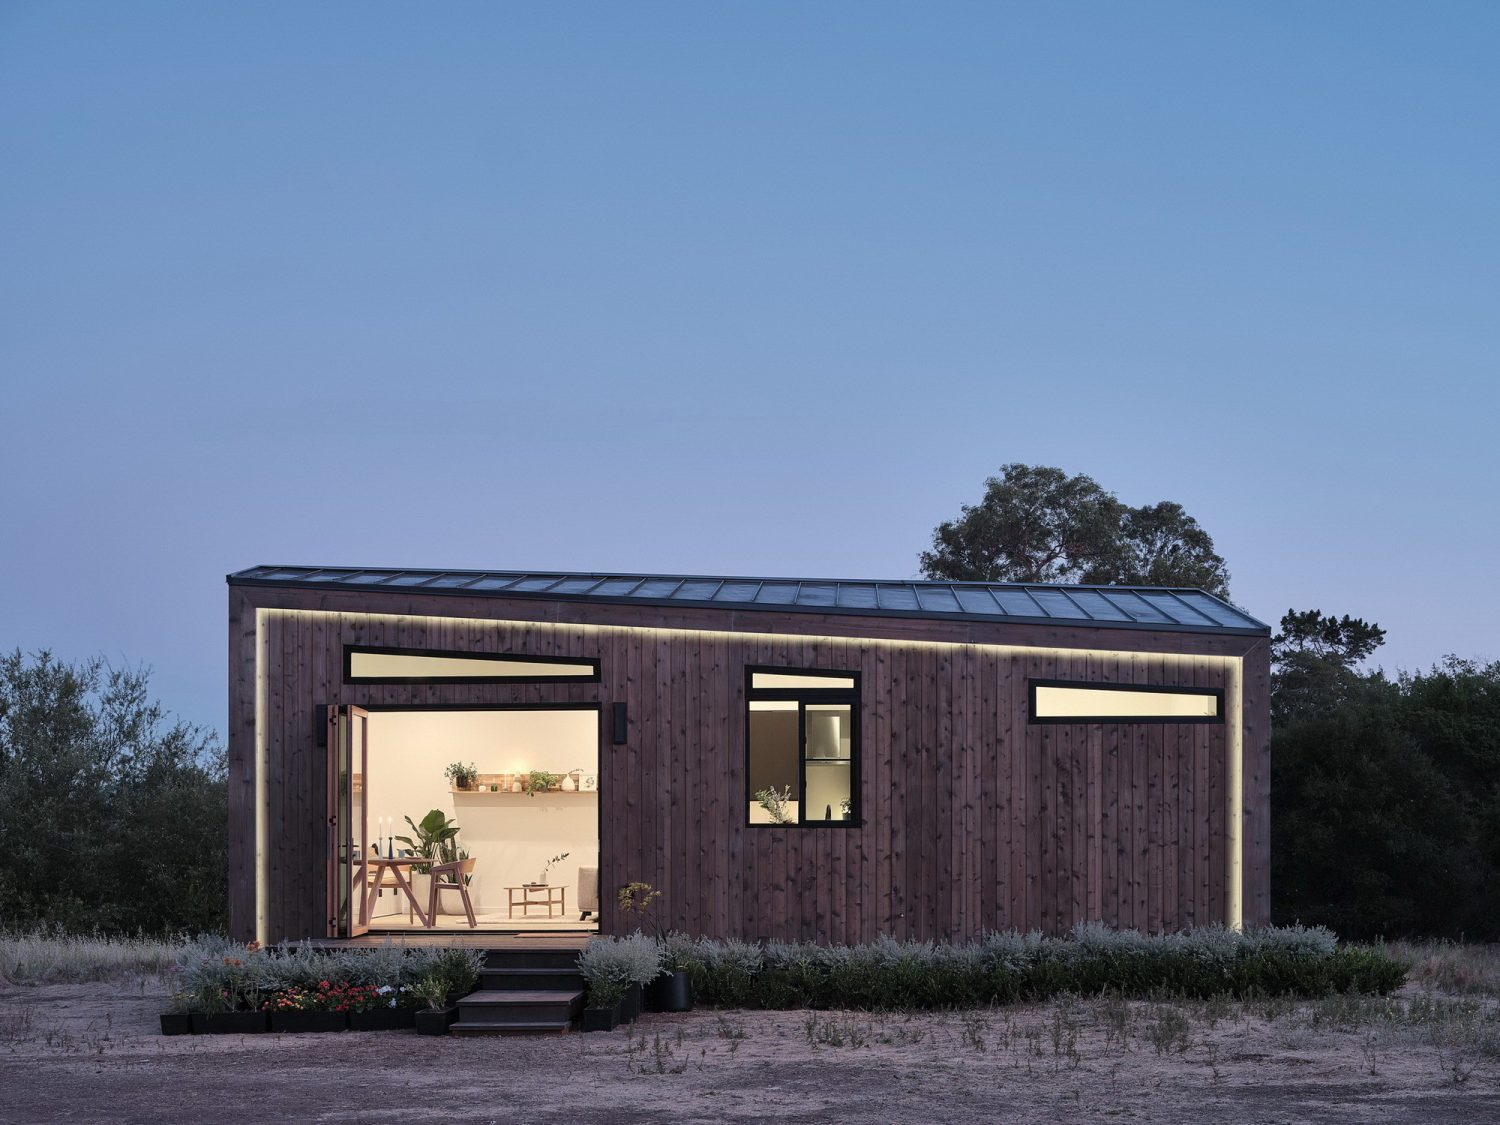 Modular Prefab Tiny Homes by Koto and Abodu